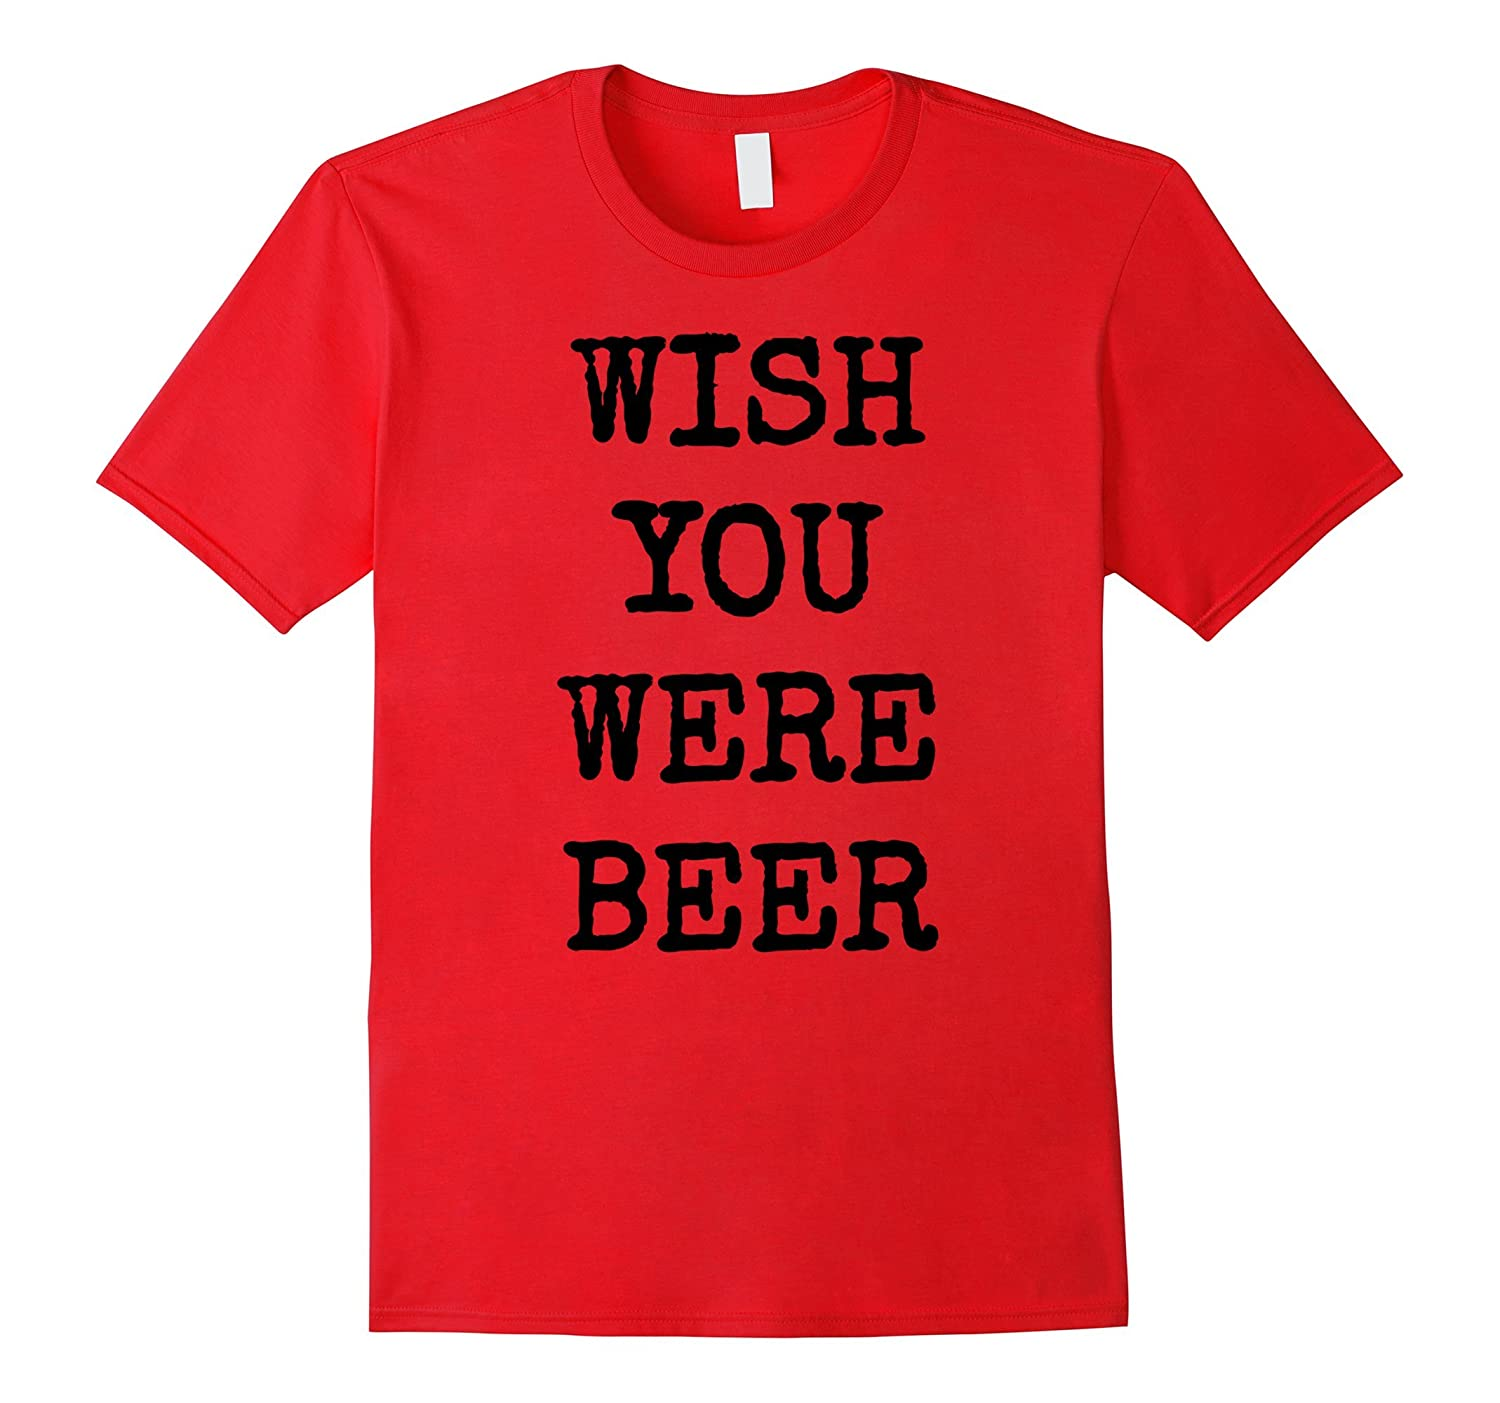 Wish You Were Beer Funny Cute Love Parody Bar Drinking Shirt-TH